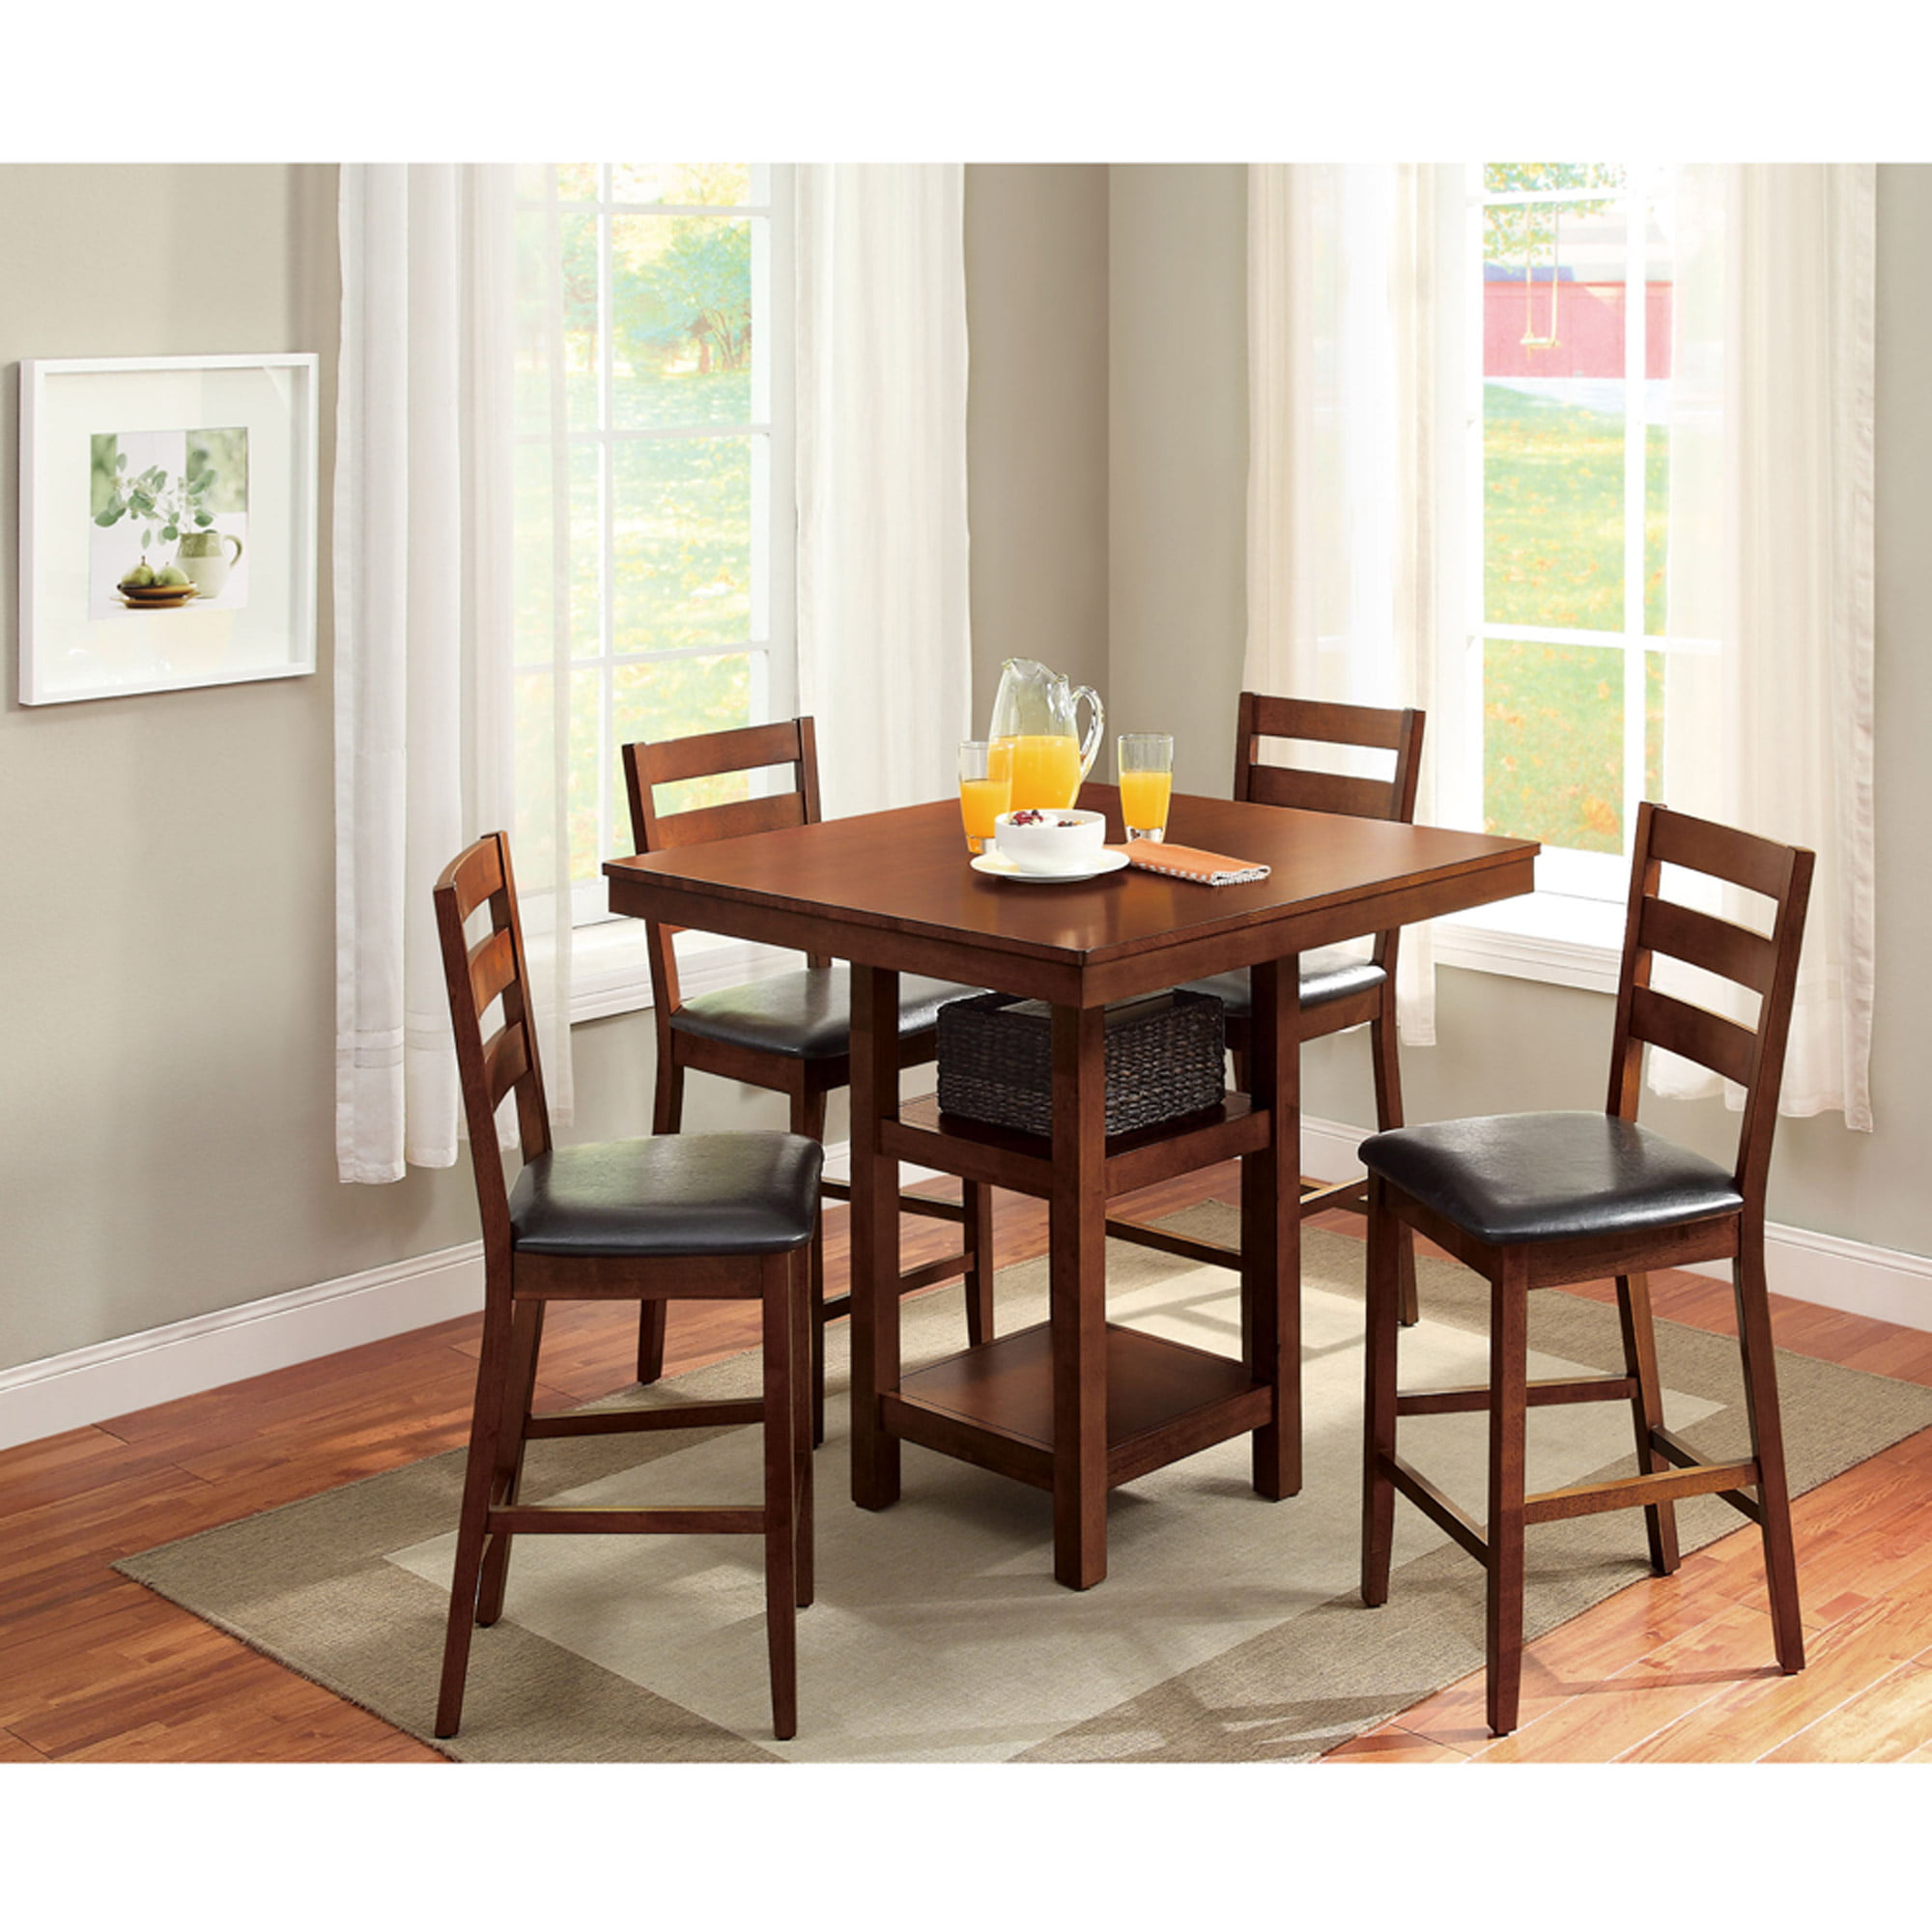 Dining Room Table Pictures Adorable Kitchen & Dining Furniture  Walmart Decorating Design